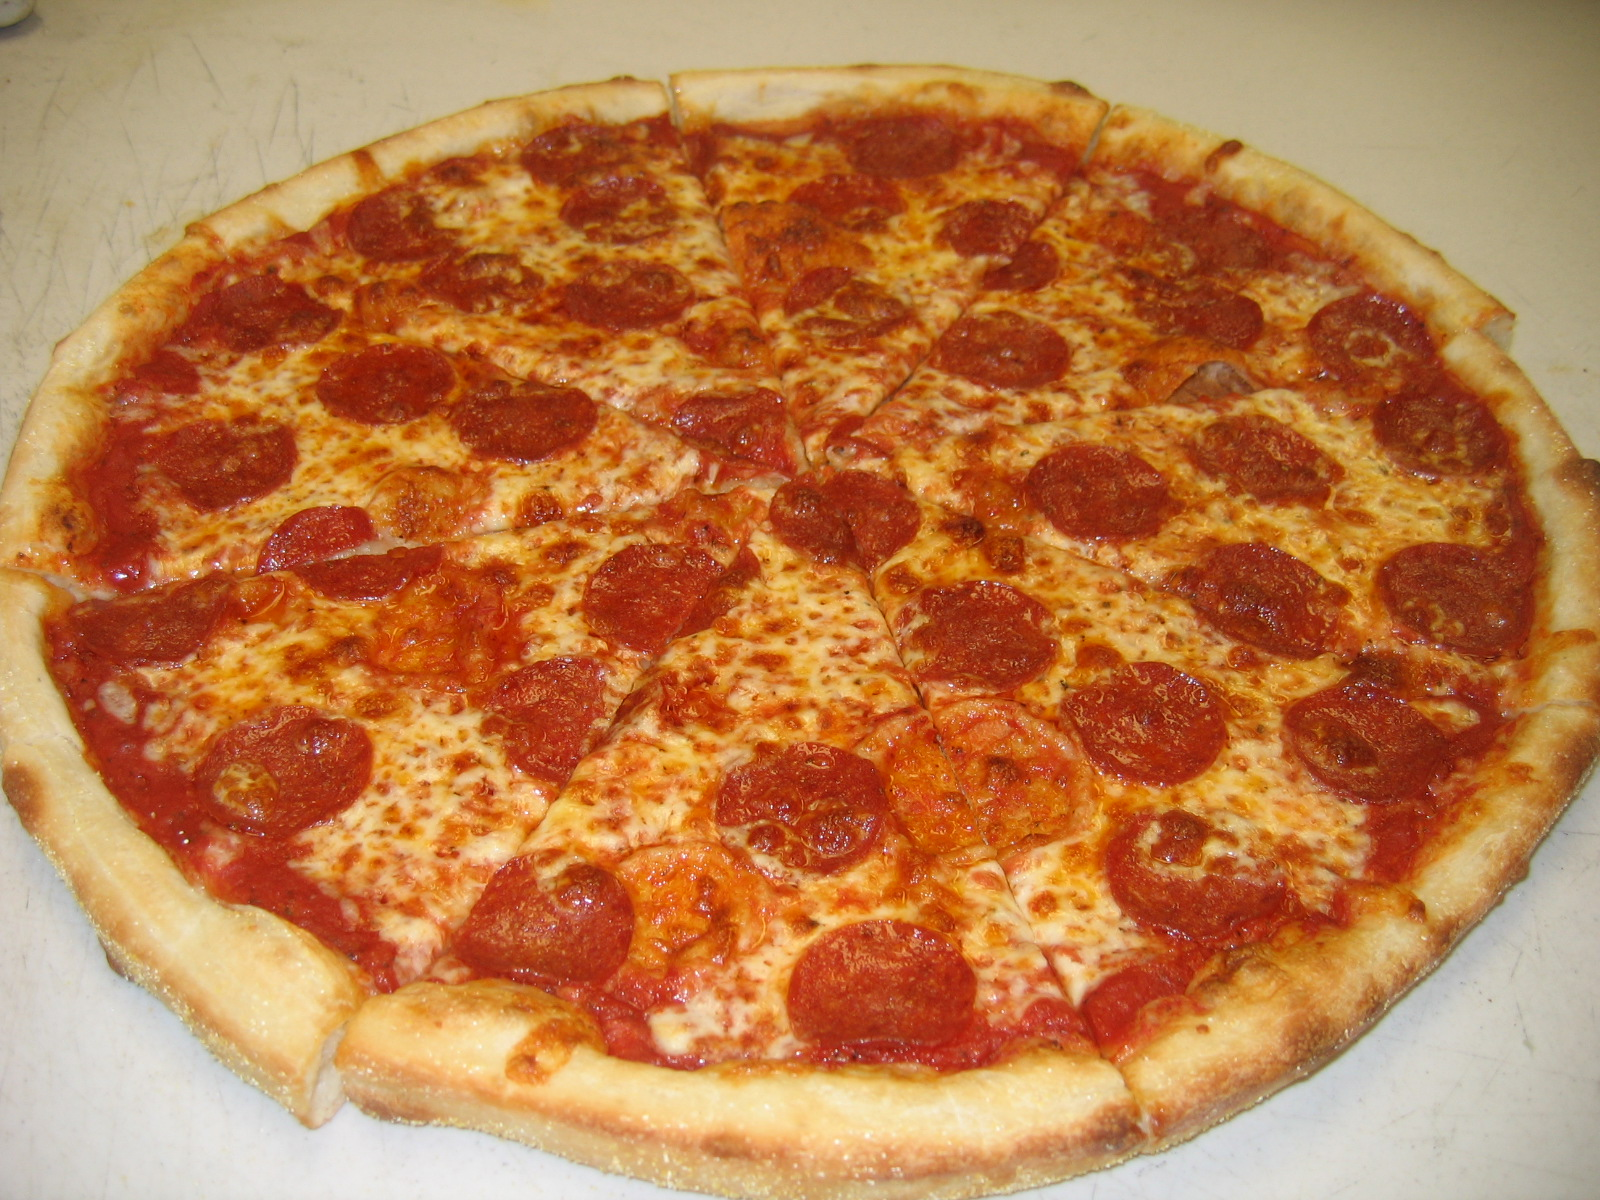 Pizza Hut Cayman Islands menu and specials. Stuffed crust pizza, all you can eat salad bar, Cayman pizza delivery take-out and dine-in!